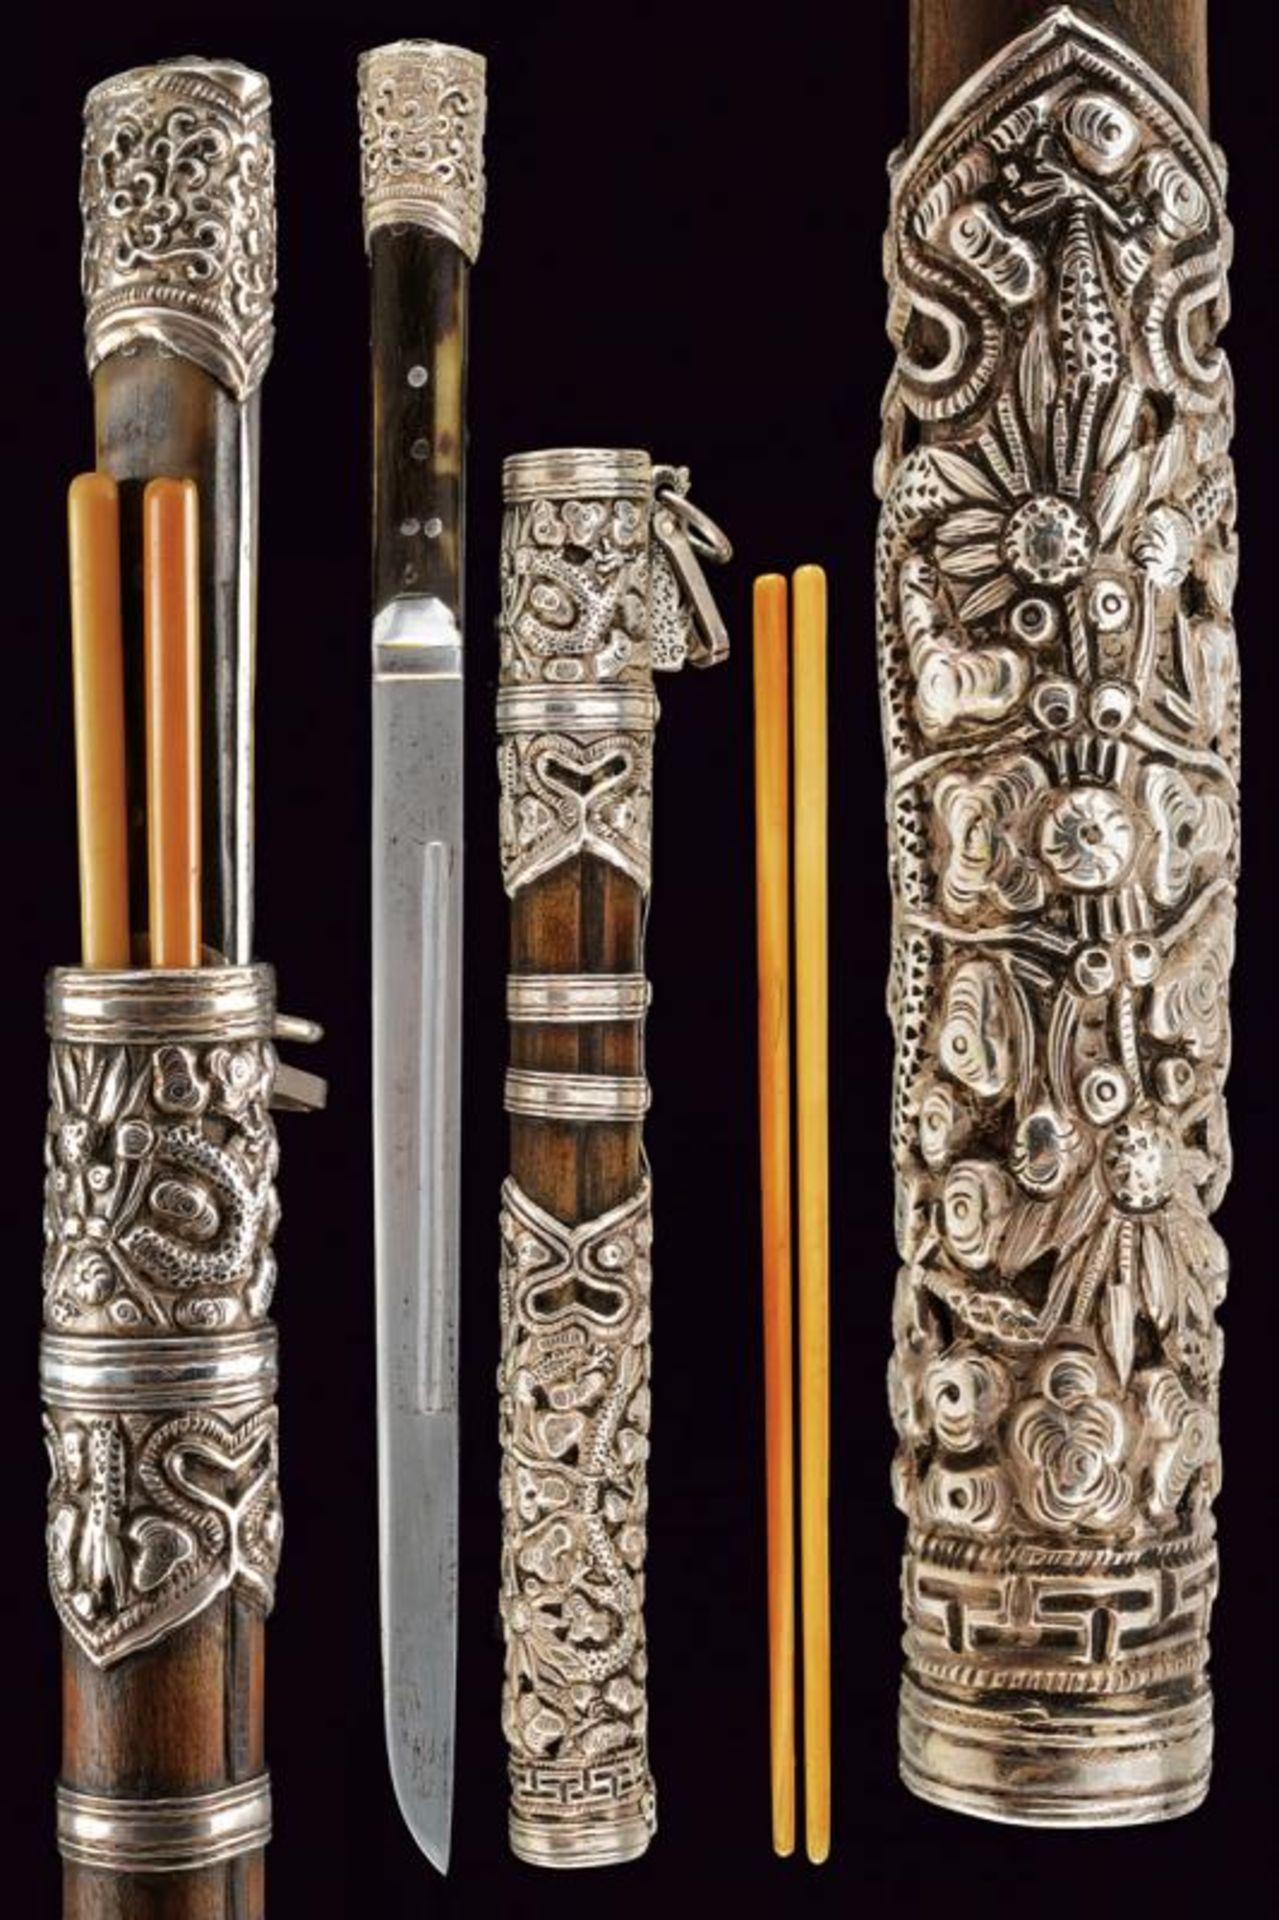 A silver mounted trousse